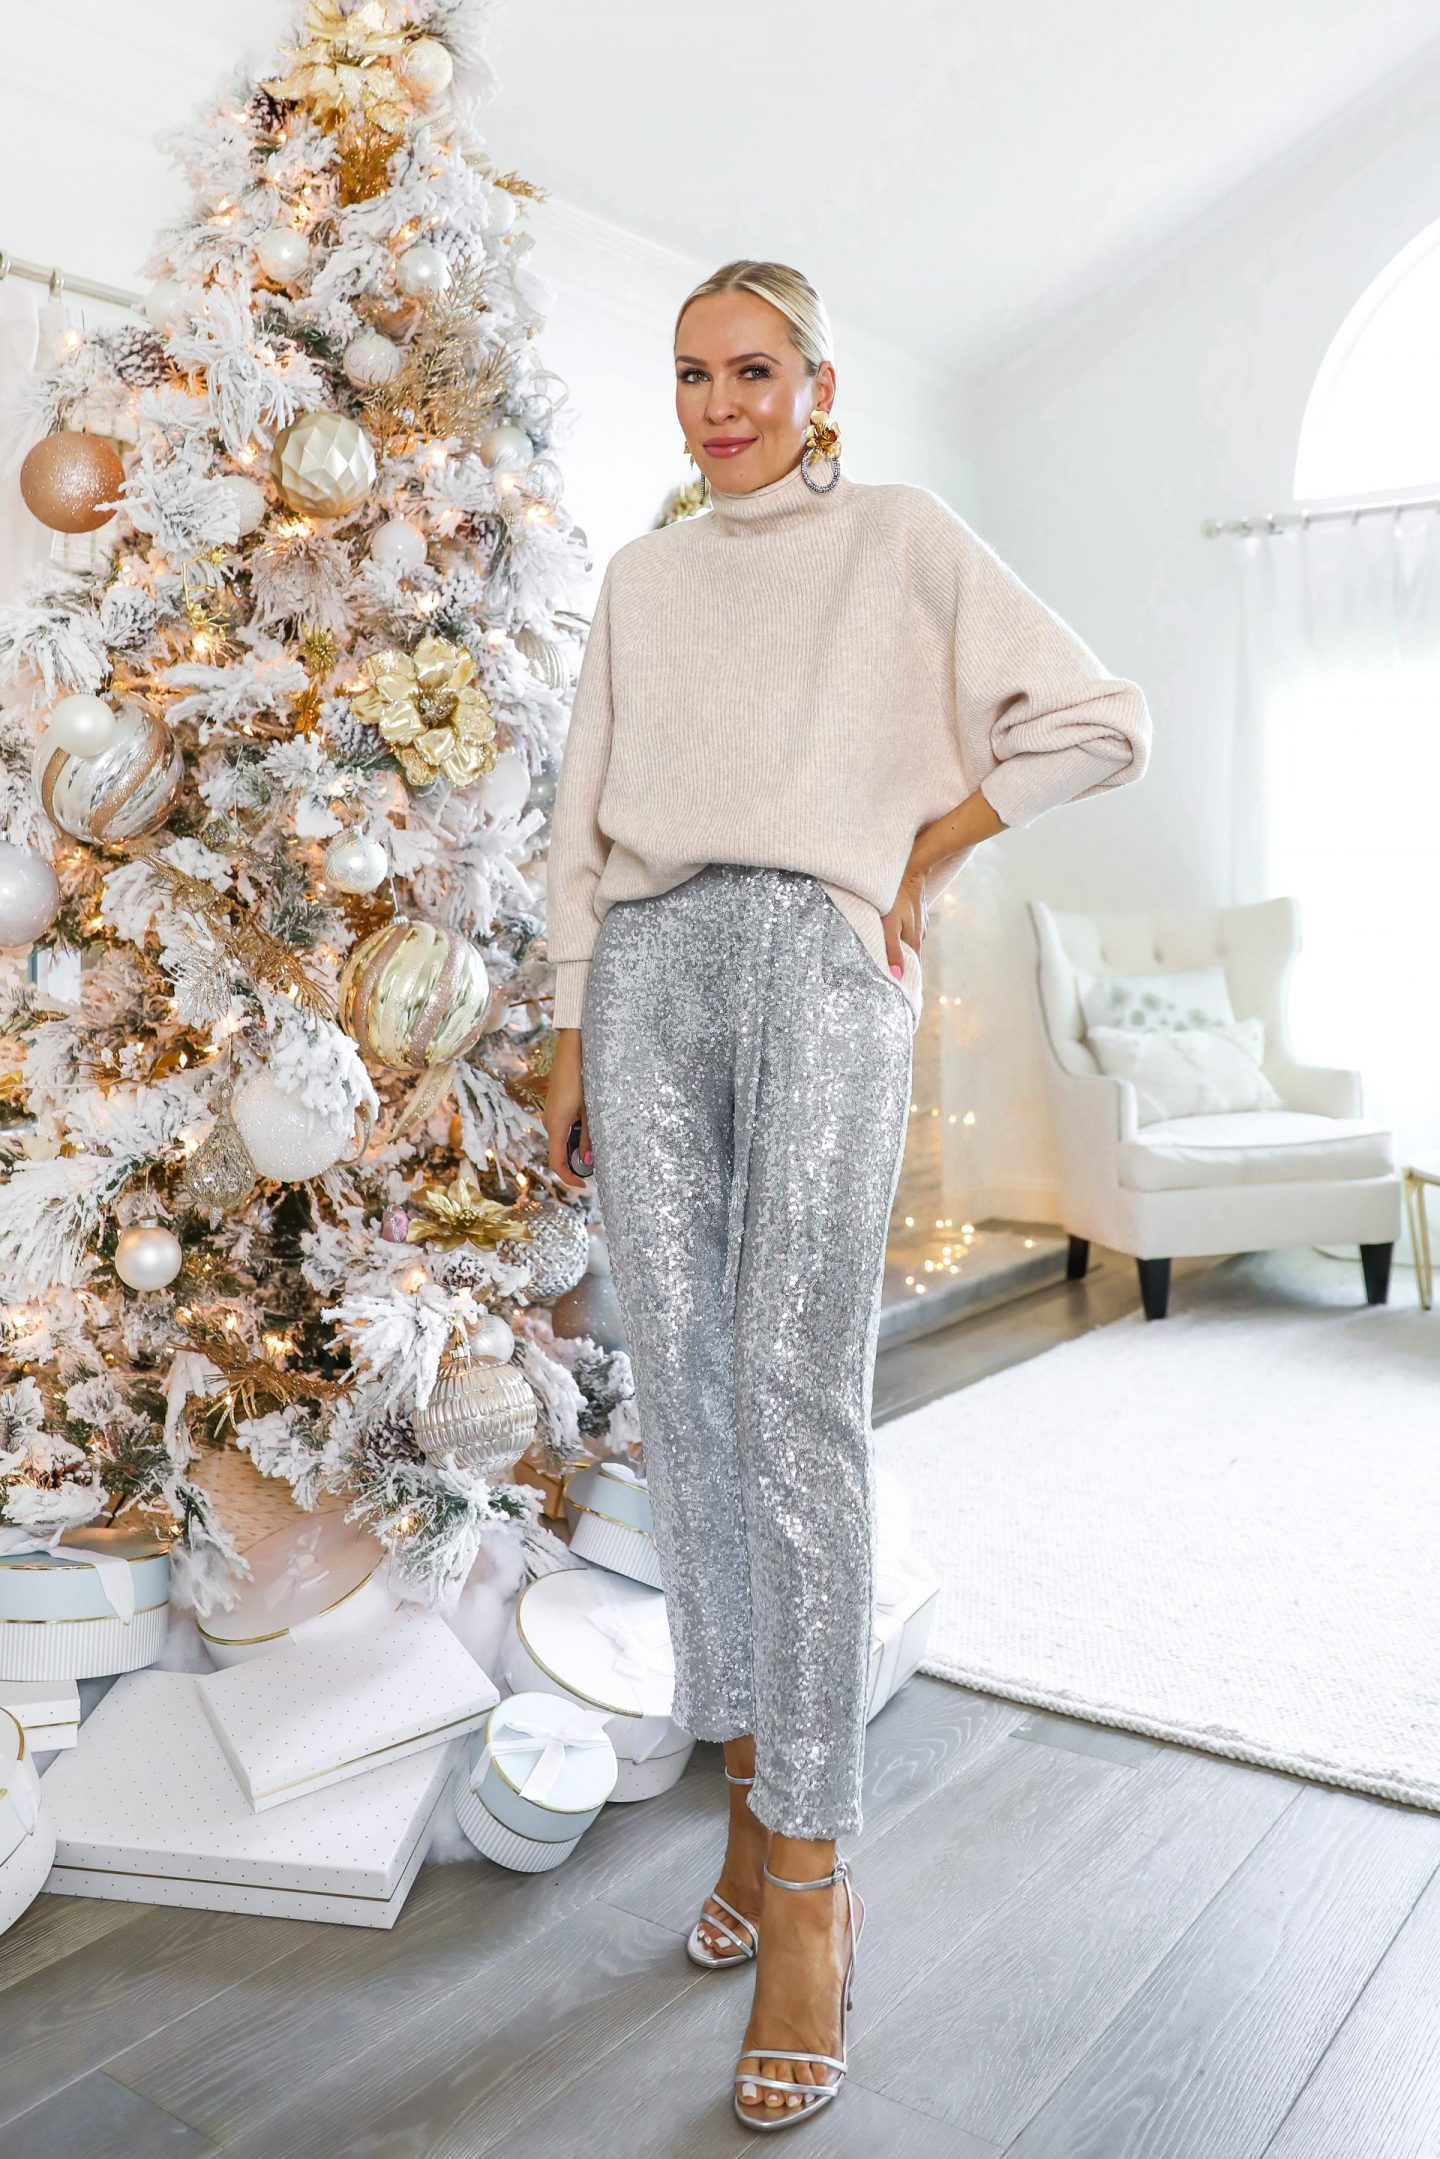 Holidays at home style inspiration, in cozy sweaters and sequin pieces. Featured by San Francisco fashion blogger Lombard & Fifth.